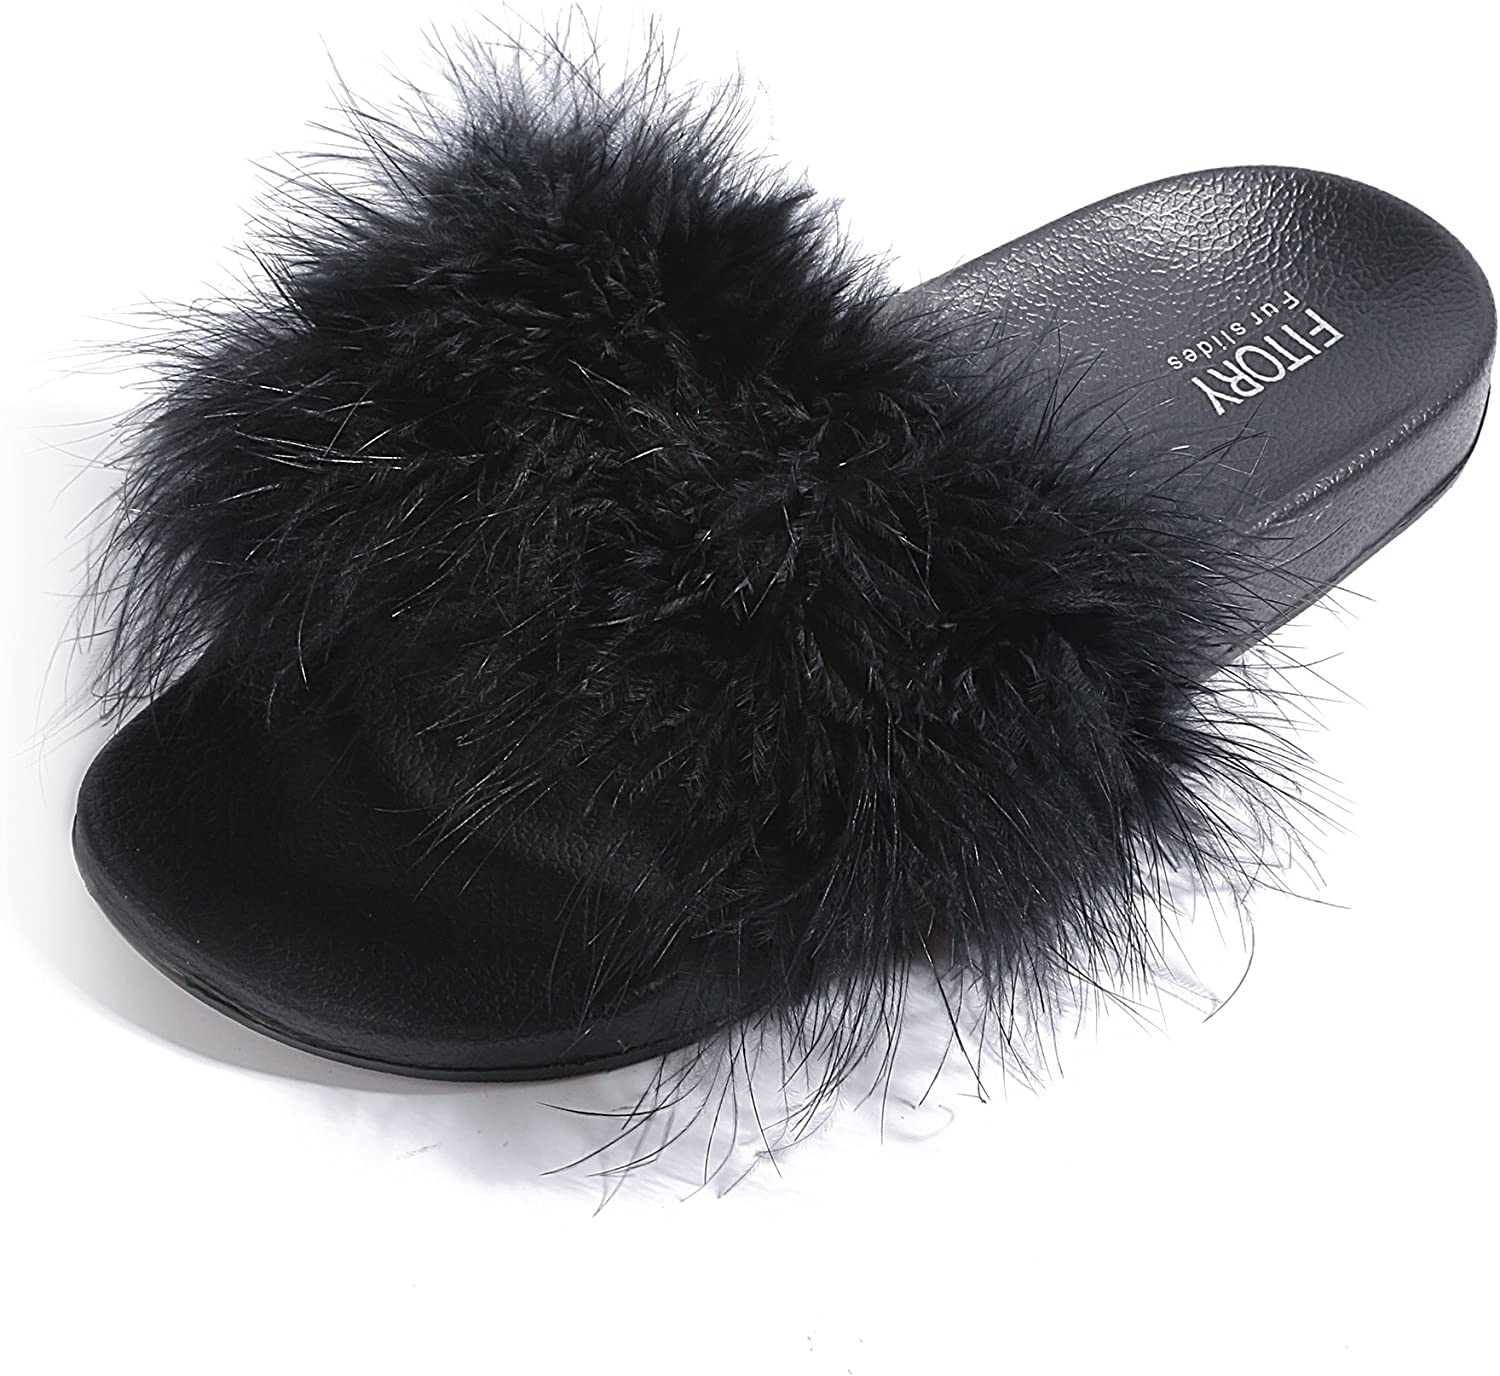 Faux Fur Comfort Fuzzy Slippers